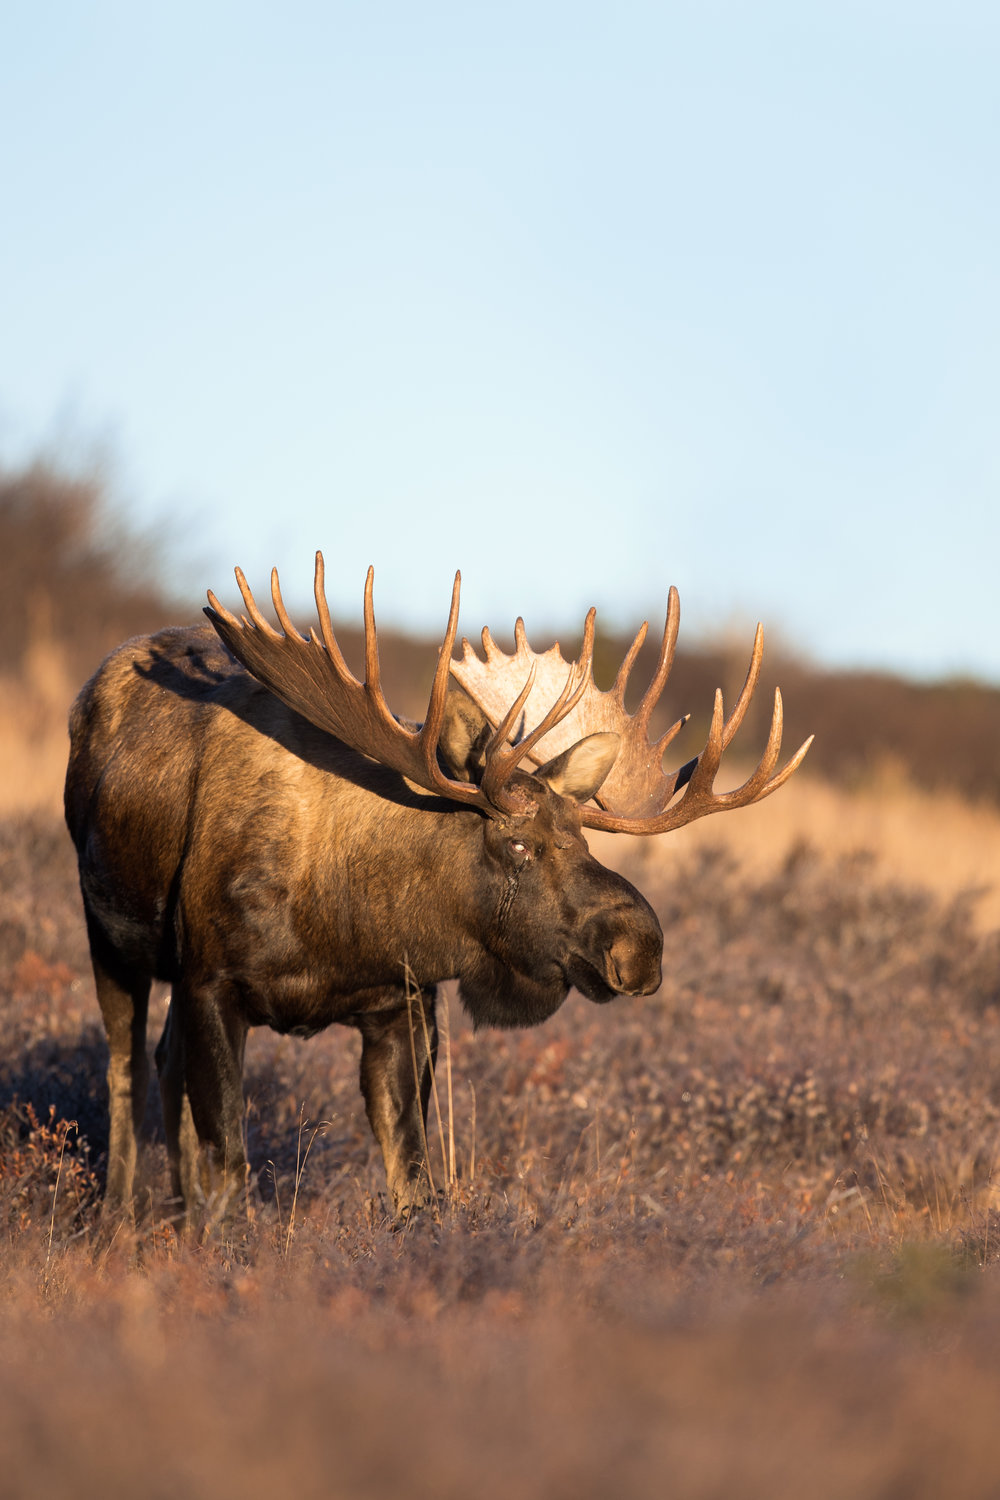 Bull Moose with a lost eye after a fight